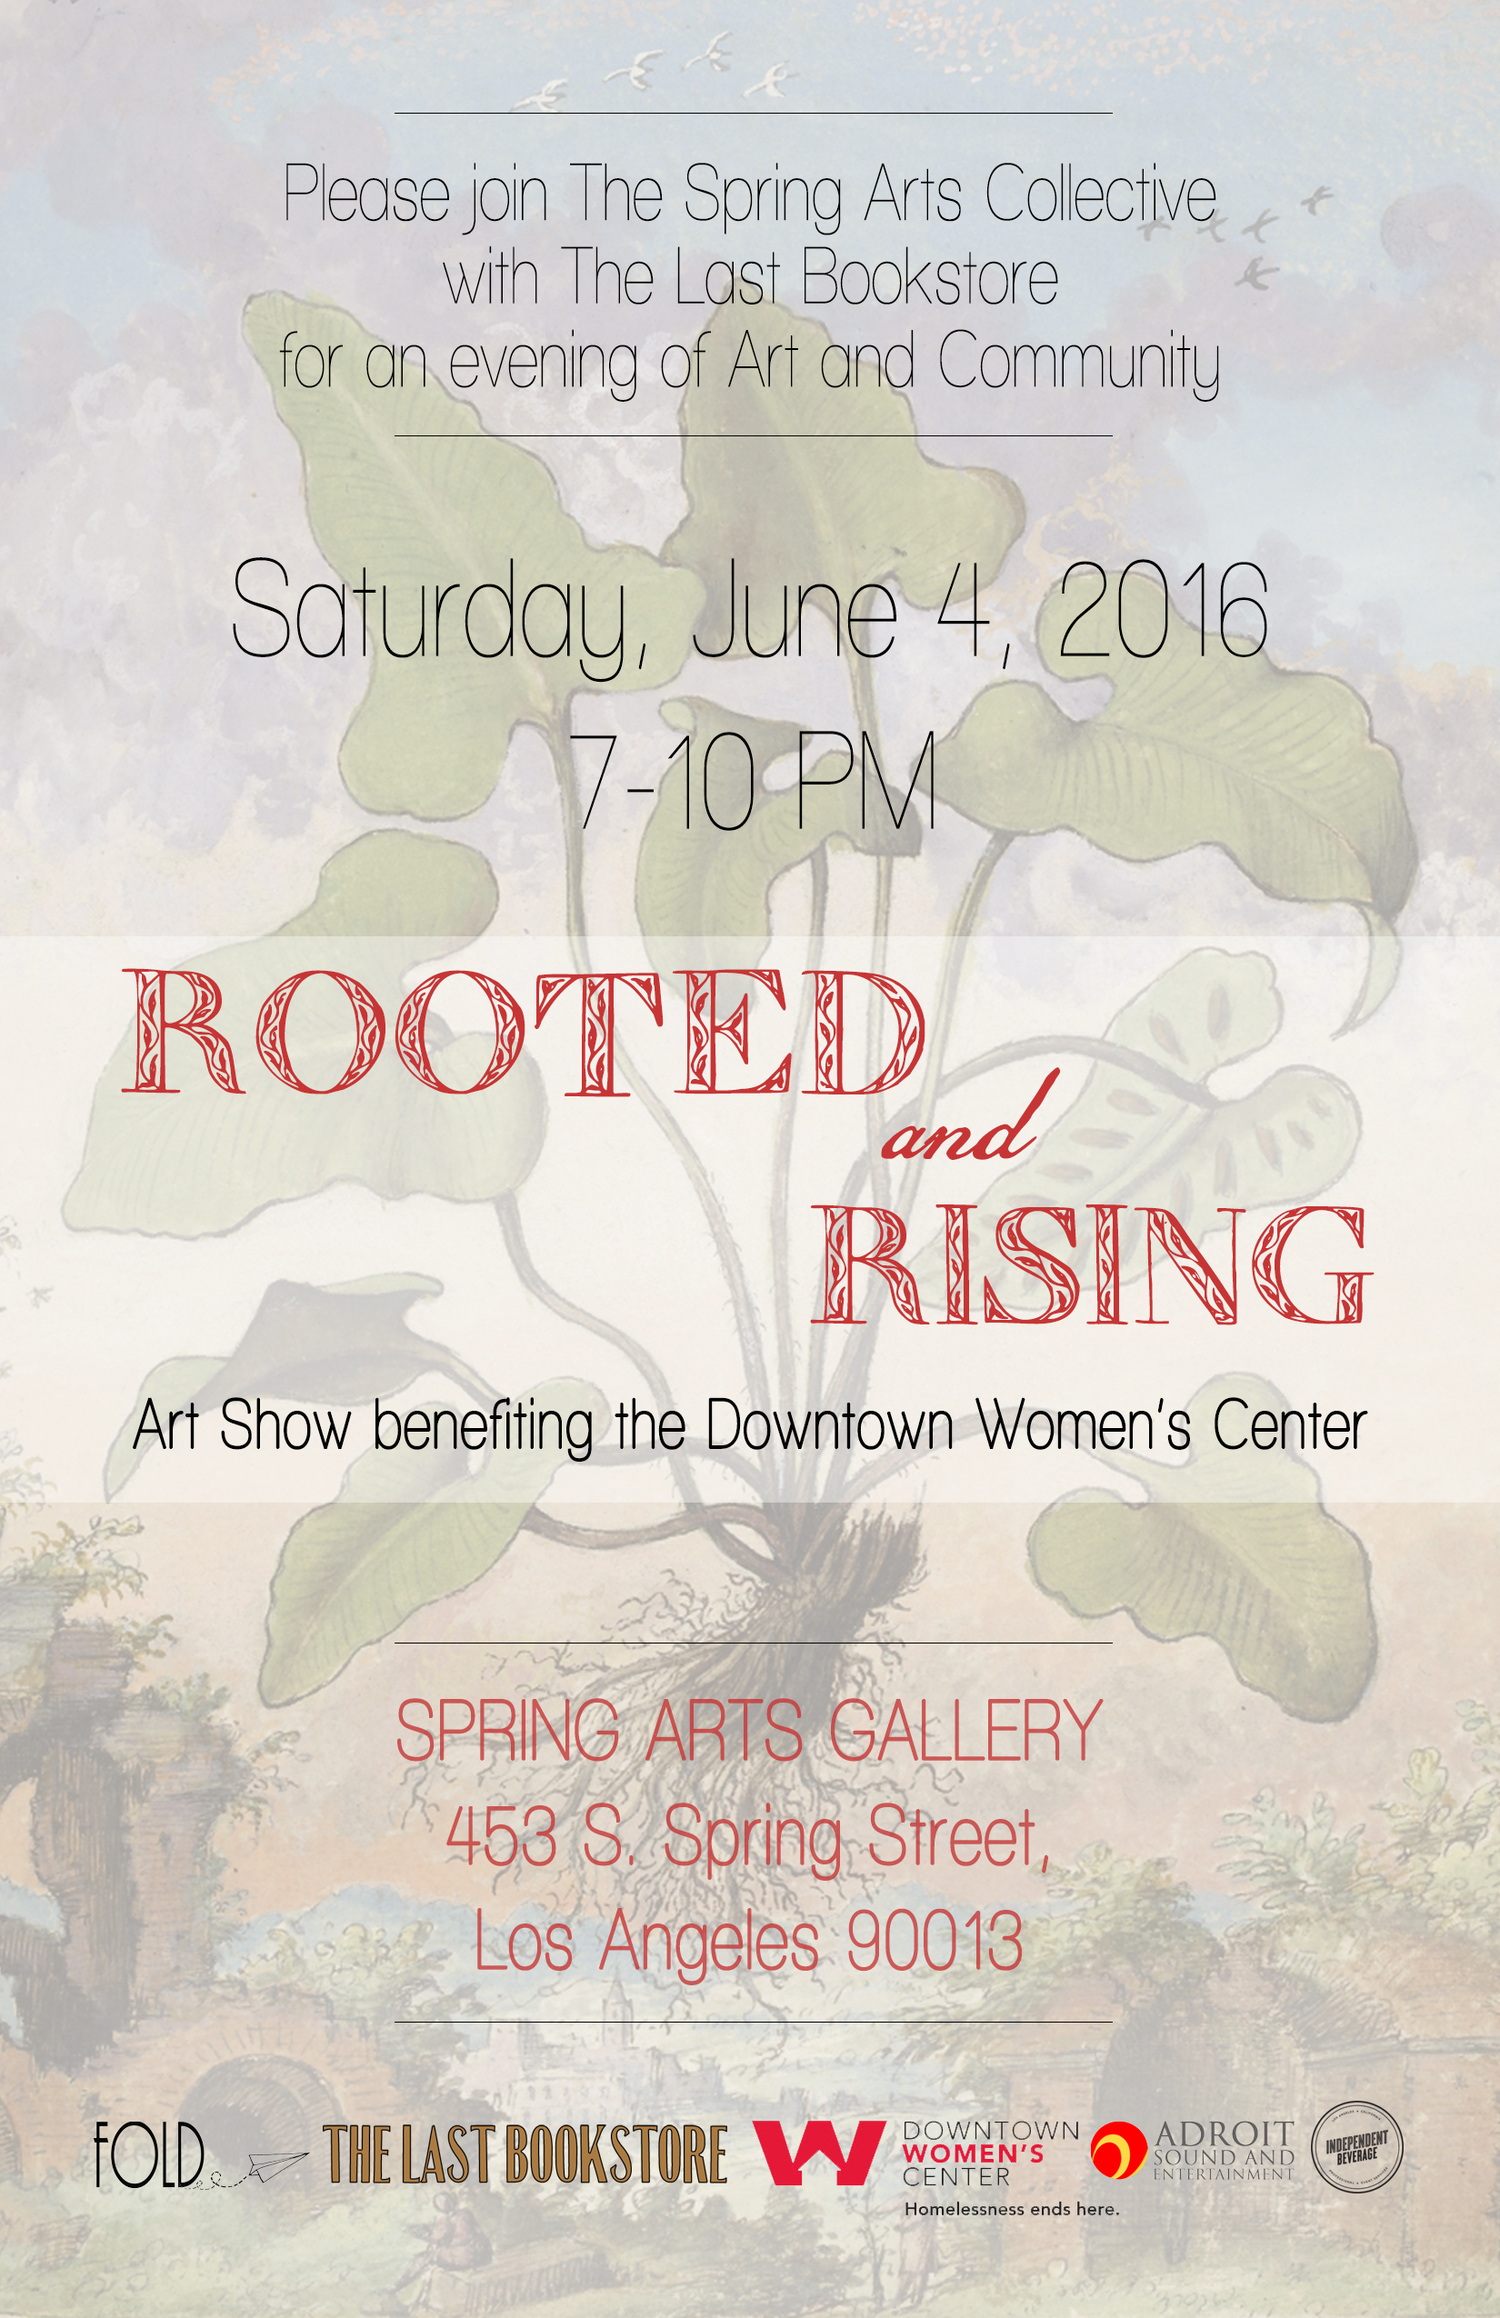 Rooted & Rising - Art Show Benefit for the Downtown Women's Center